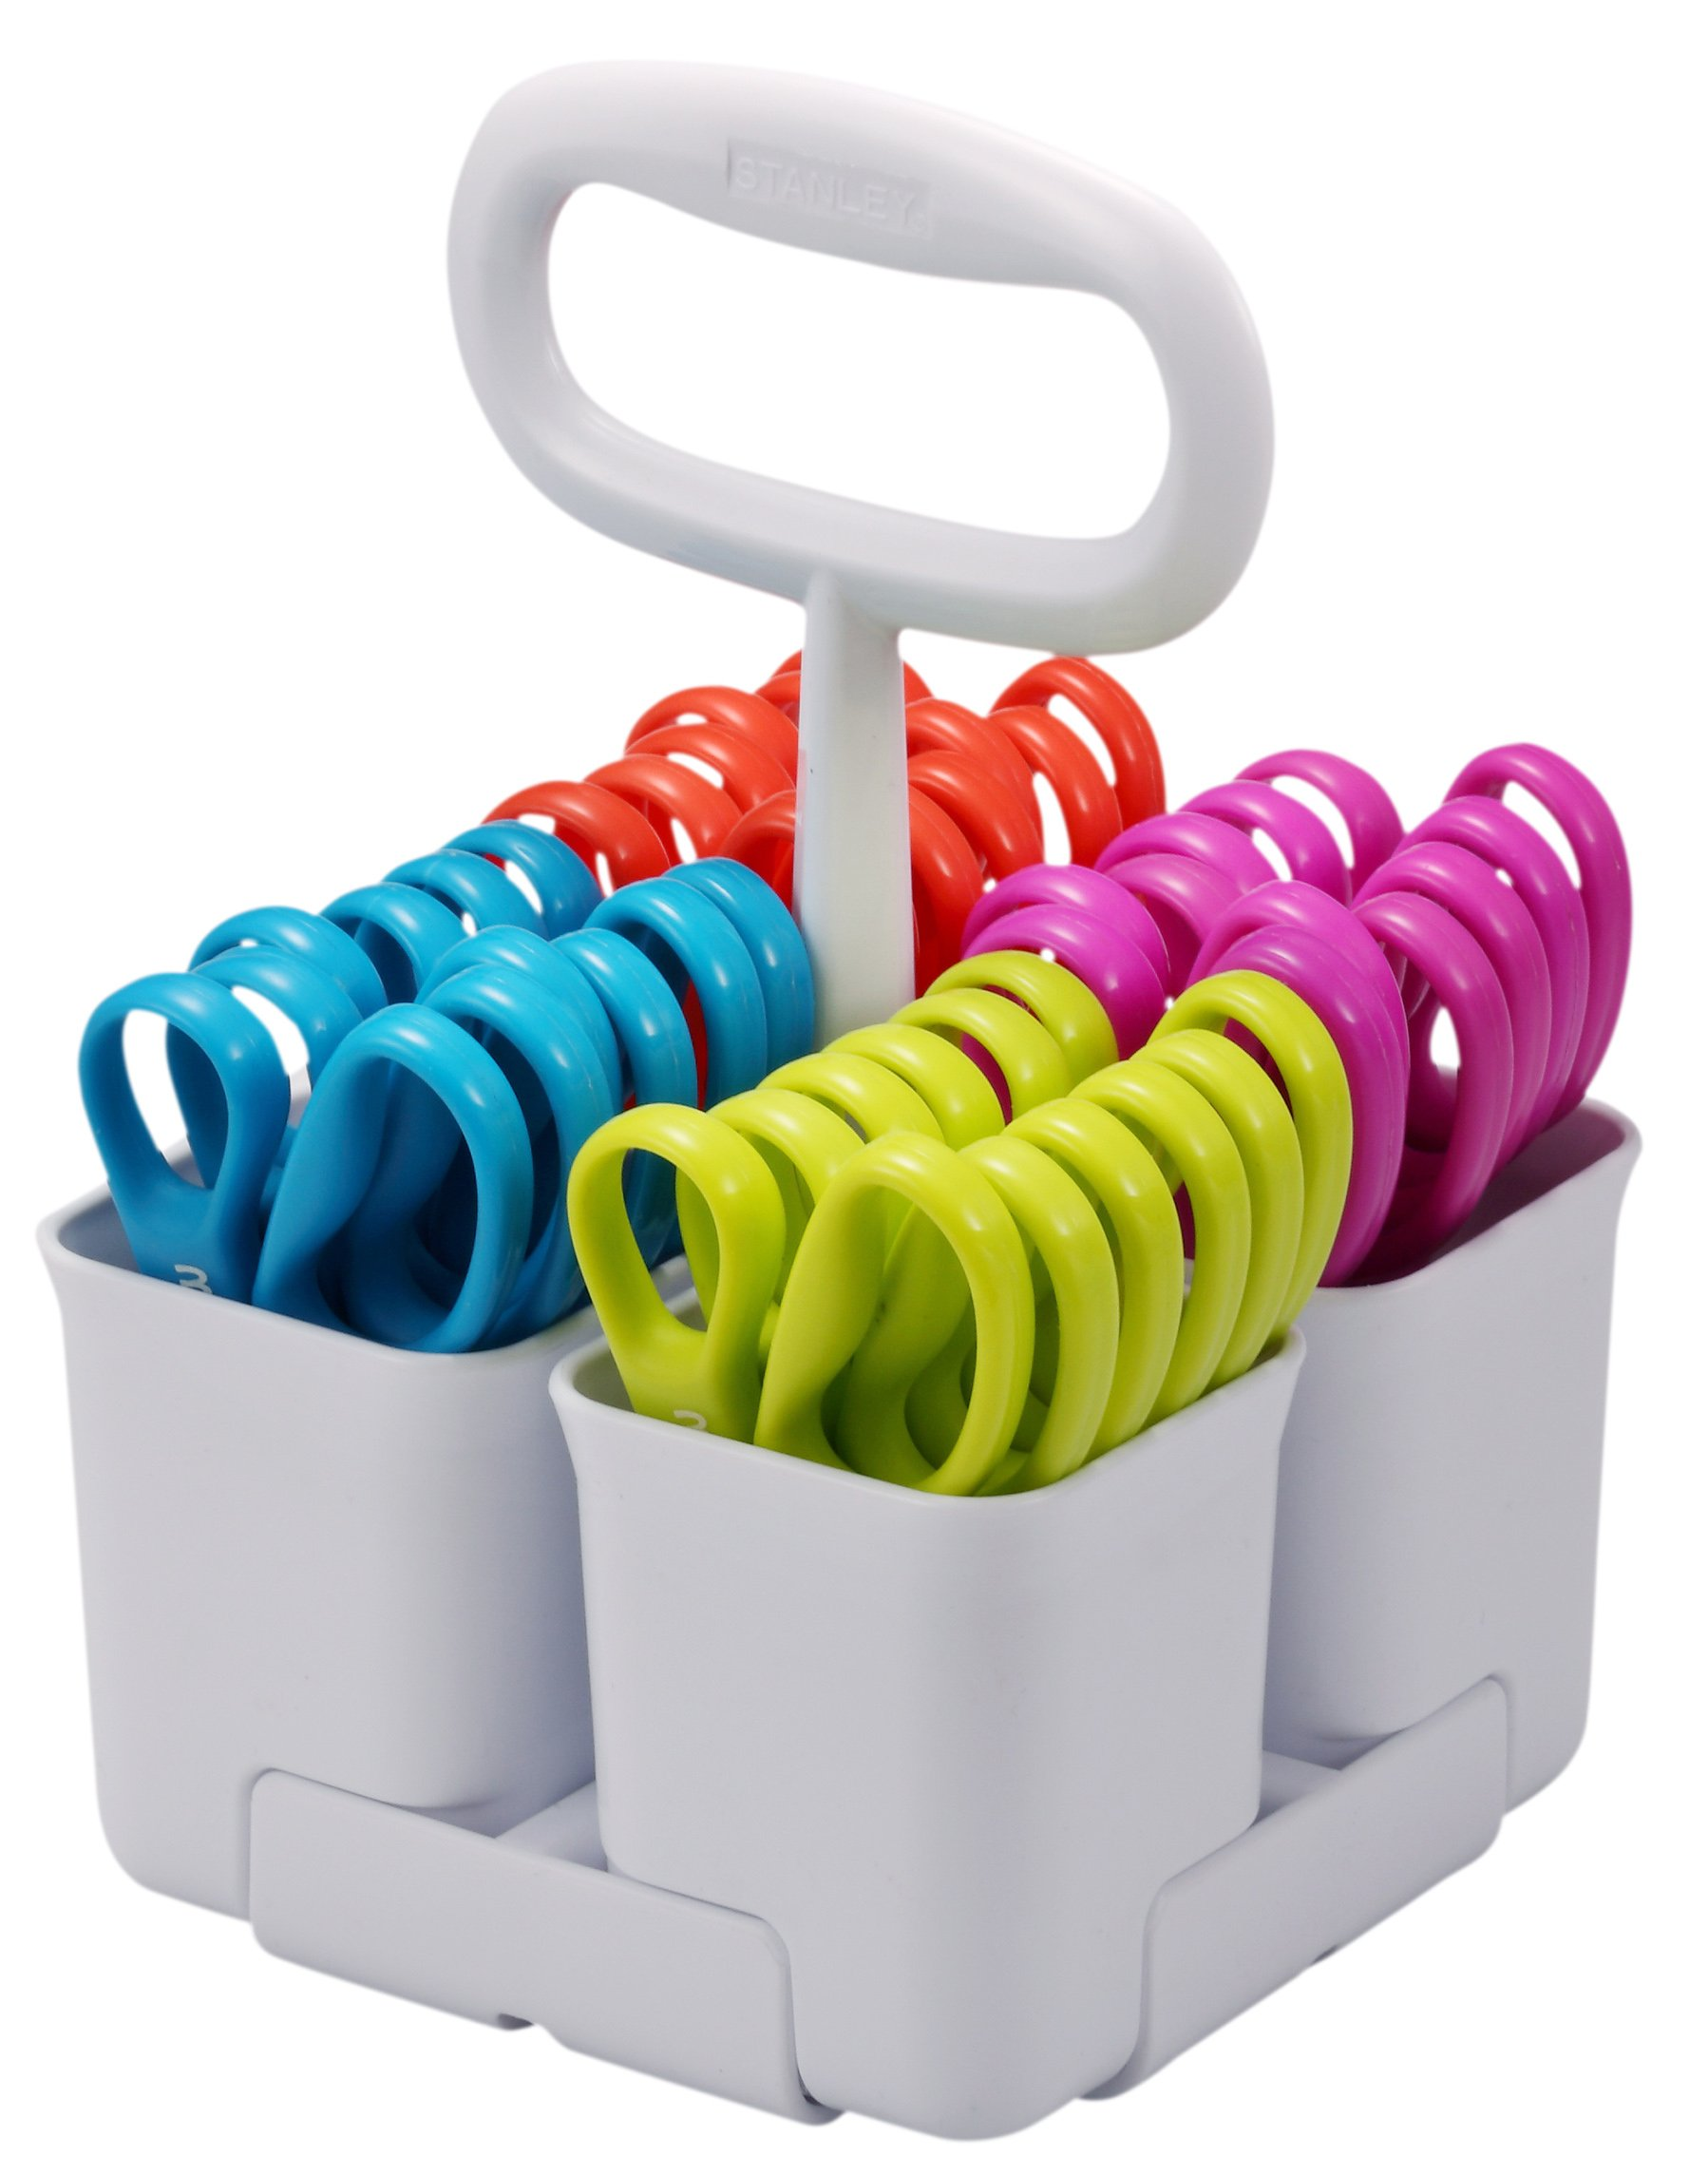 Stanley Removable 4 Cup Scissor Caddy and Guppy 5-Inch Blunt Tip Kids Scissors, 24 Pack (SCICAD-BT24) by Stanley Scissors